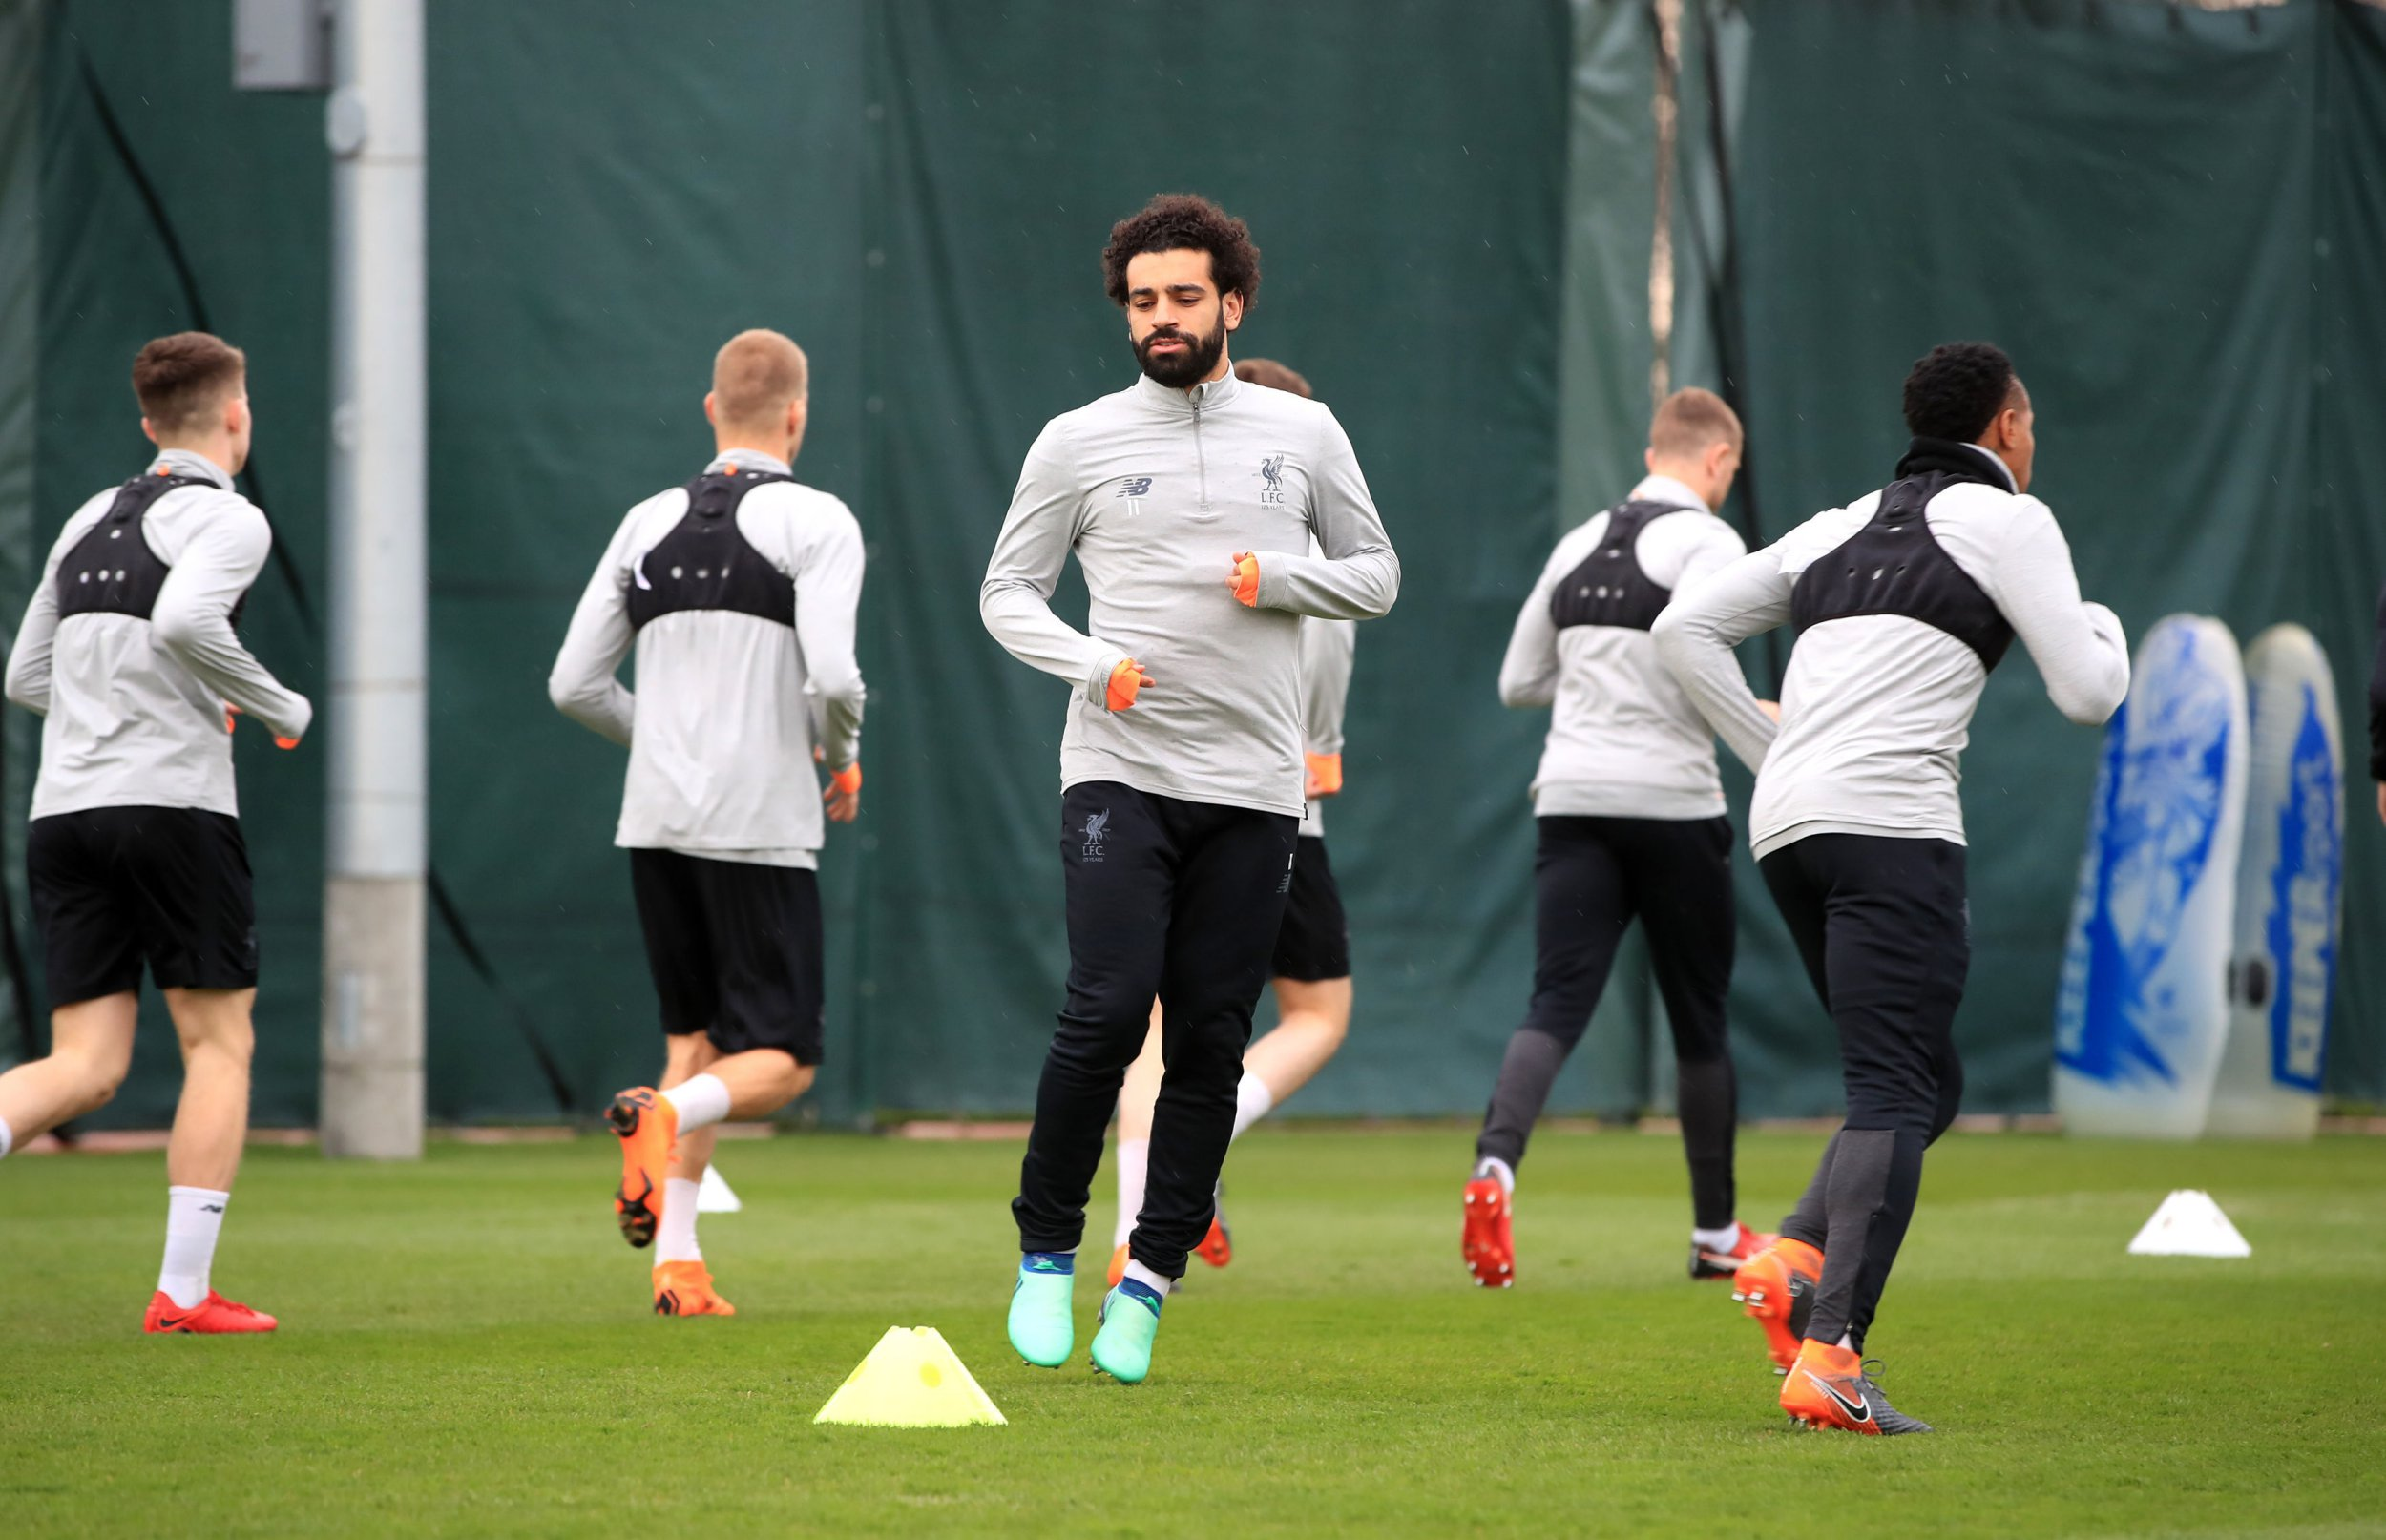 Liverpool's Mohamed Salah (centre) during the training session at Melwood, Liverpool. PRESS ASSOCIATION Photo. Picture date: Monday April 9, 2018. See PA story SOCCER Liverpool. Photo credit should read: Peter Byrne/PA Wire